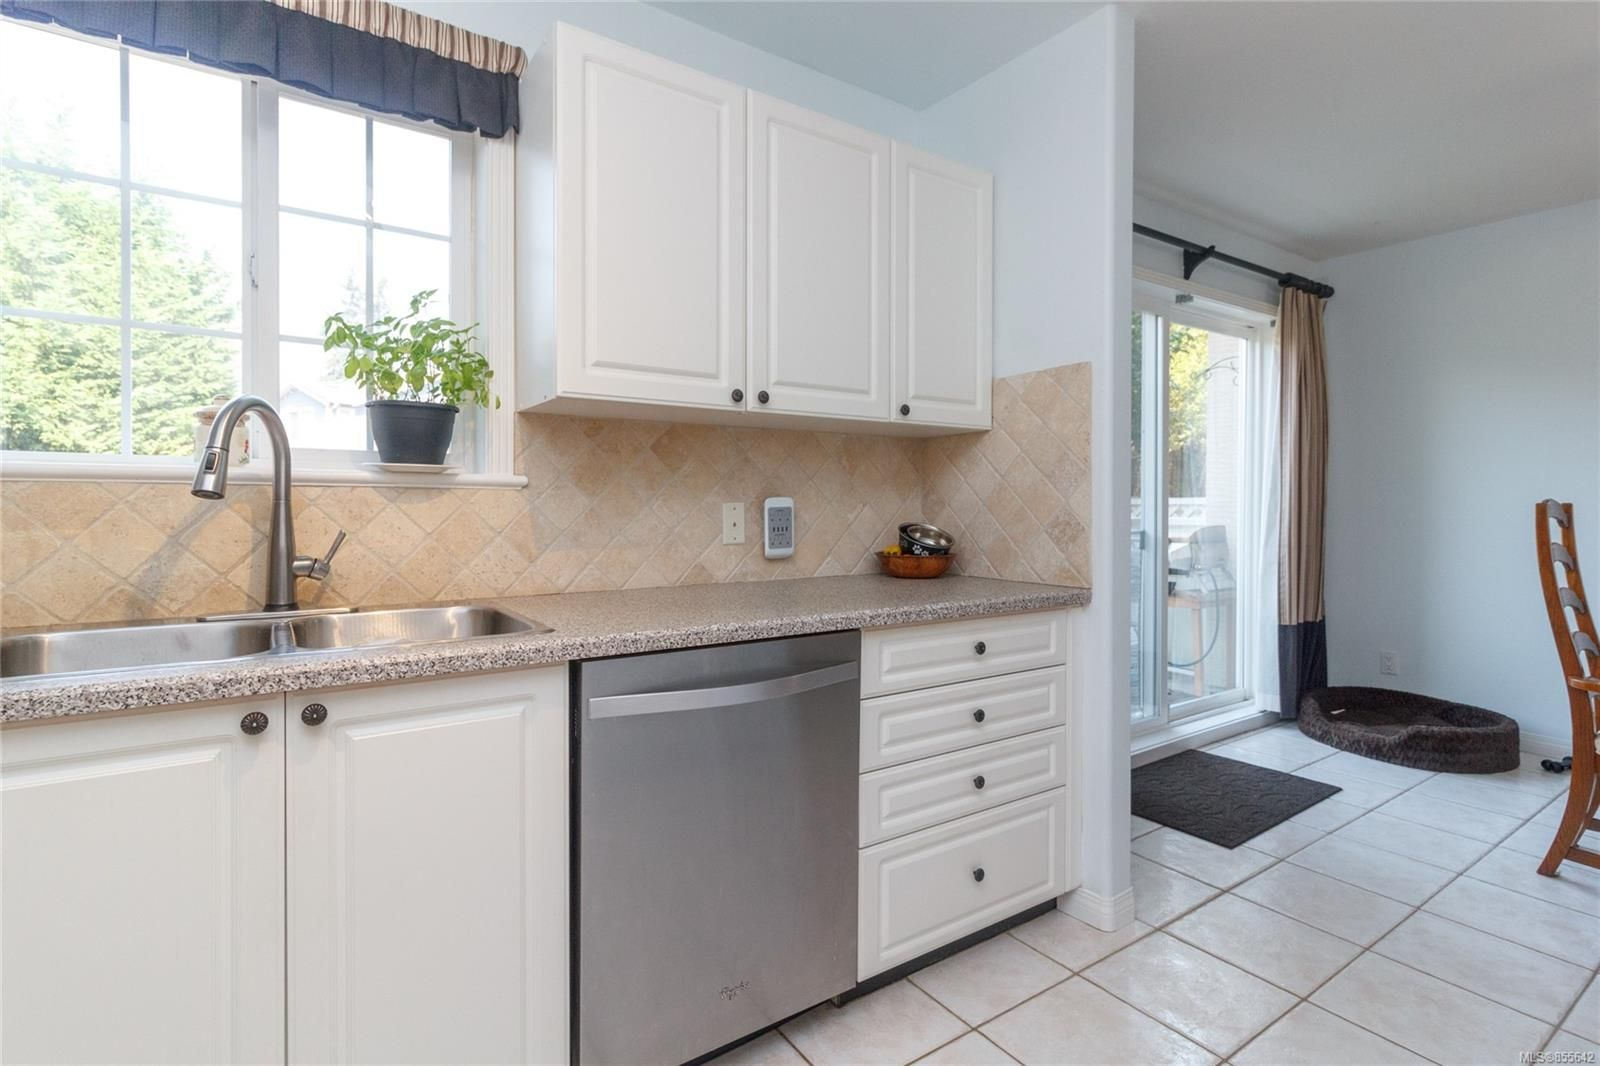 Photo 11: Photos: 52 14 Erskine Lane in : VR Hospital Row/Townhouse for sale (View Royal)  : MLS®# 855642